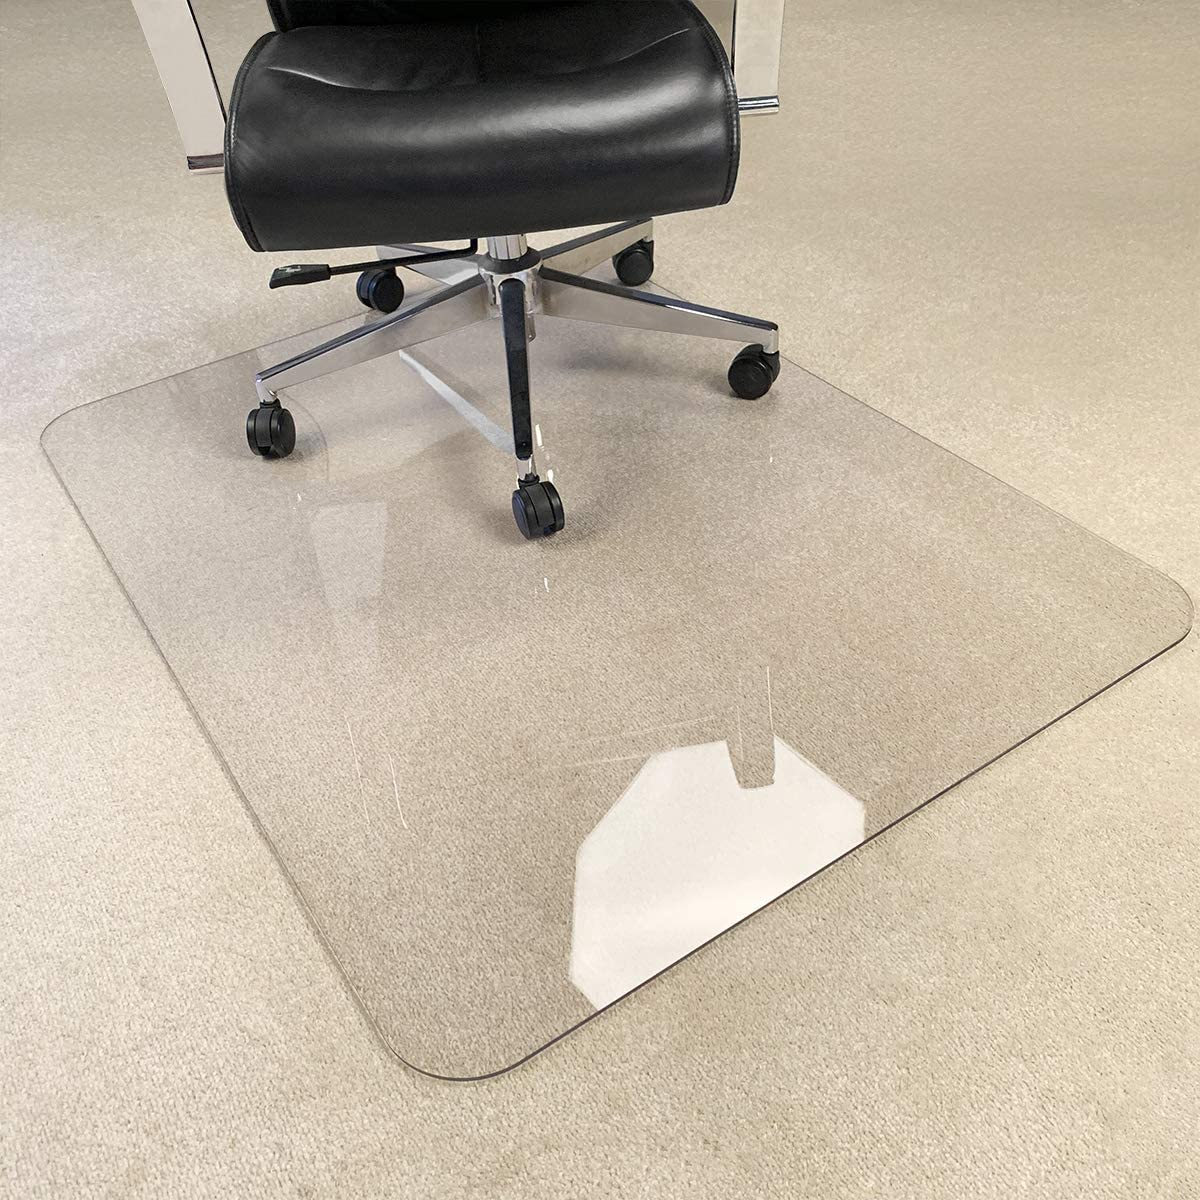 Upgraded Version Crystal Clear 1 5 Thick 47 x 35 Heavy Duty Hard Chair Mat, Can be Used on Carpet or Hard Floor